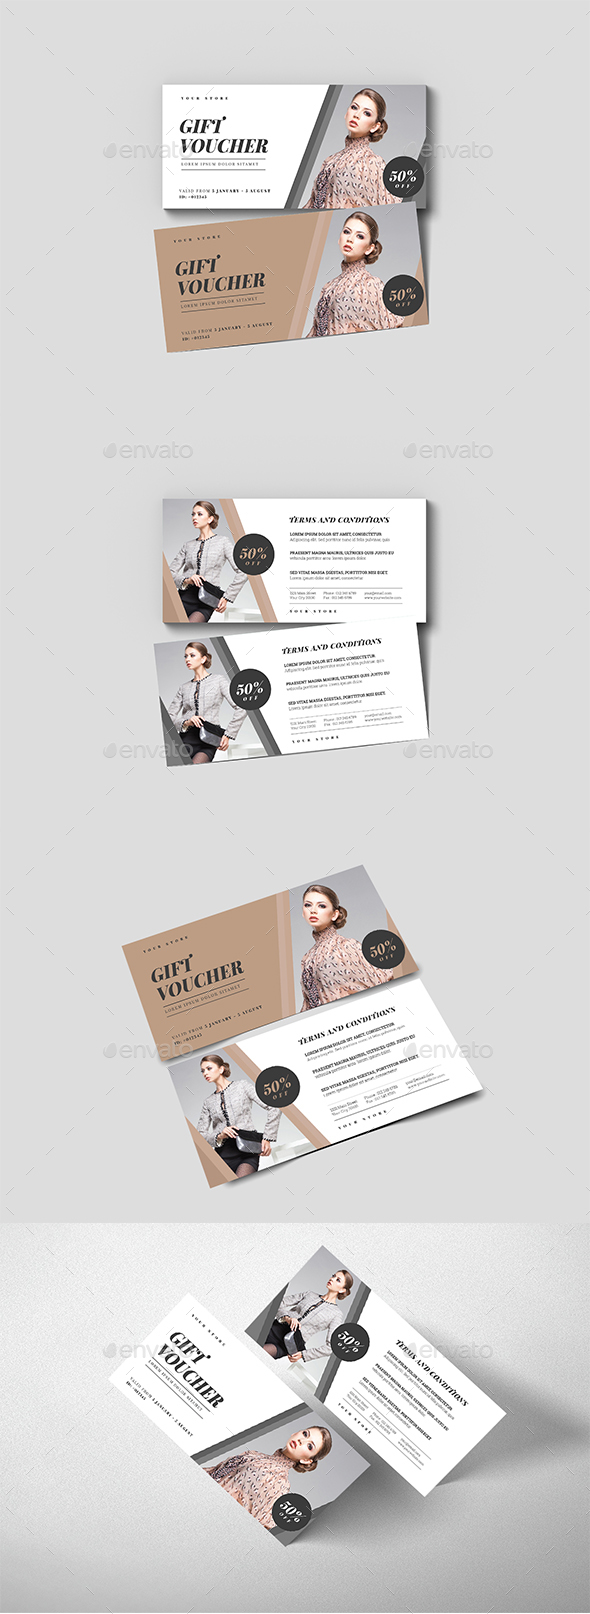 Simple Fashion Gift Voucher - Loyalty Cards Cards & Invites